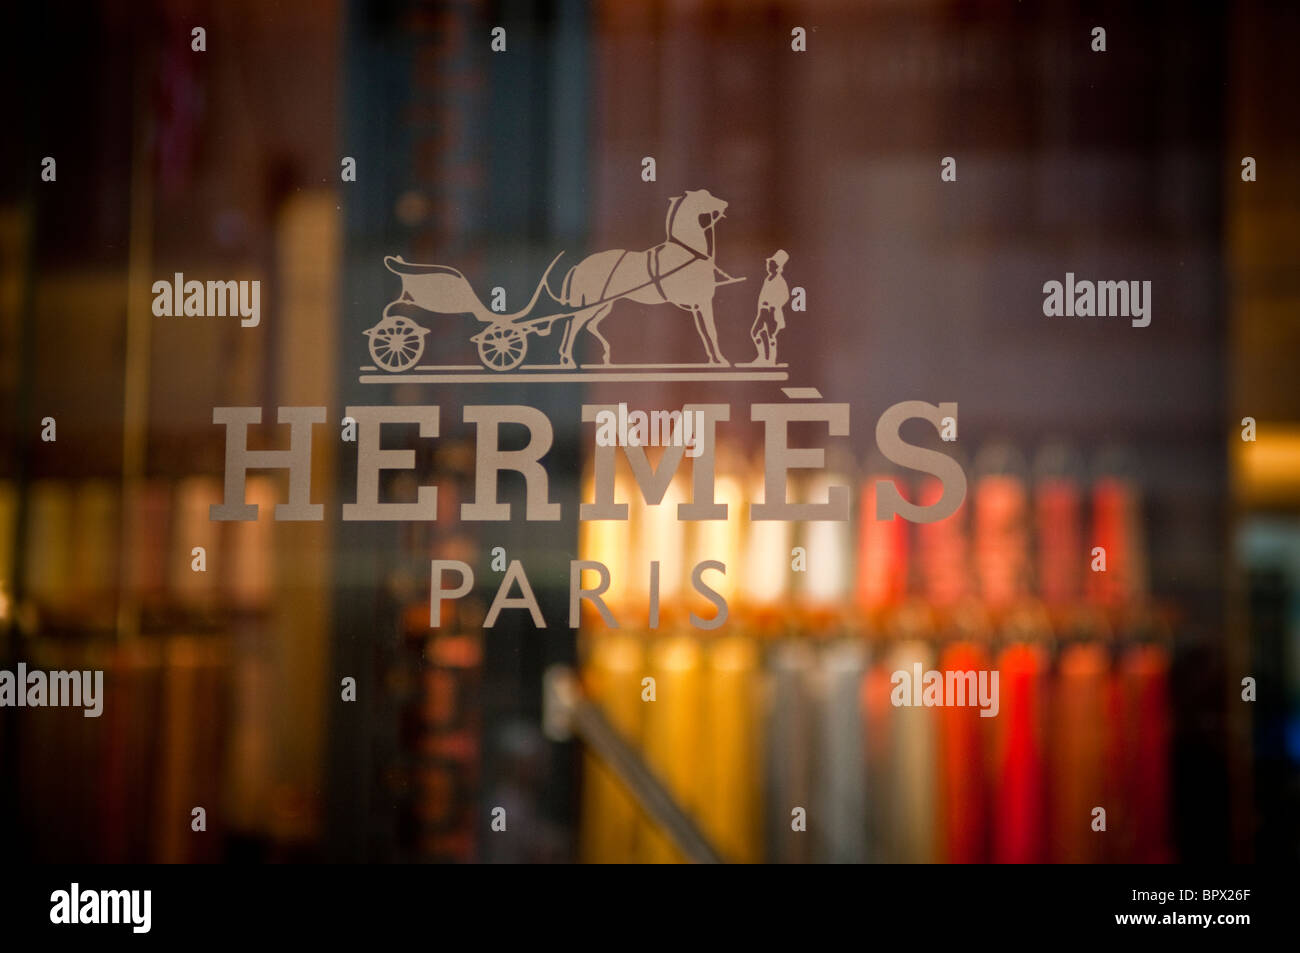 Hermes Store Fashion Clothing Photos   Hermes Store Fashion Clothing ... 892f2ca9d2c